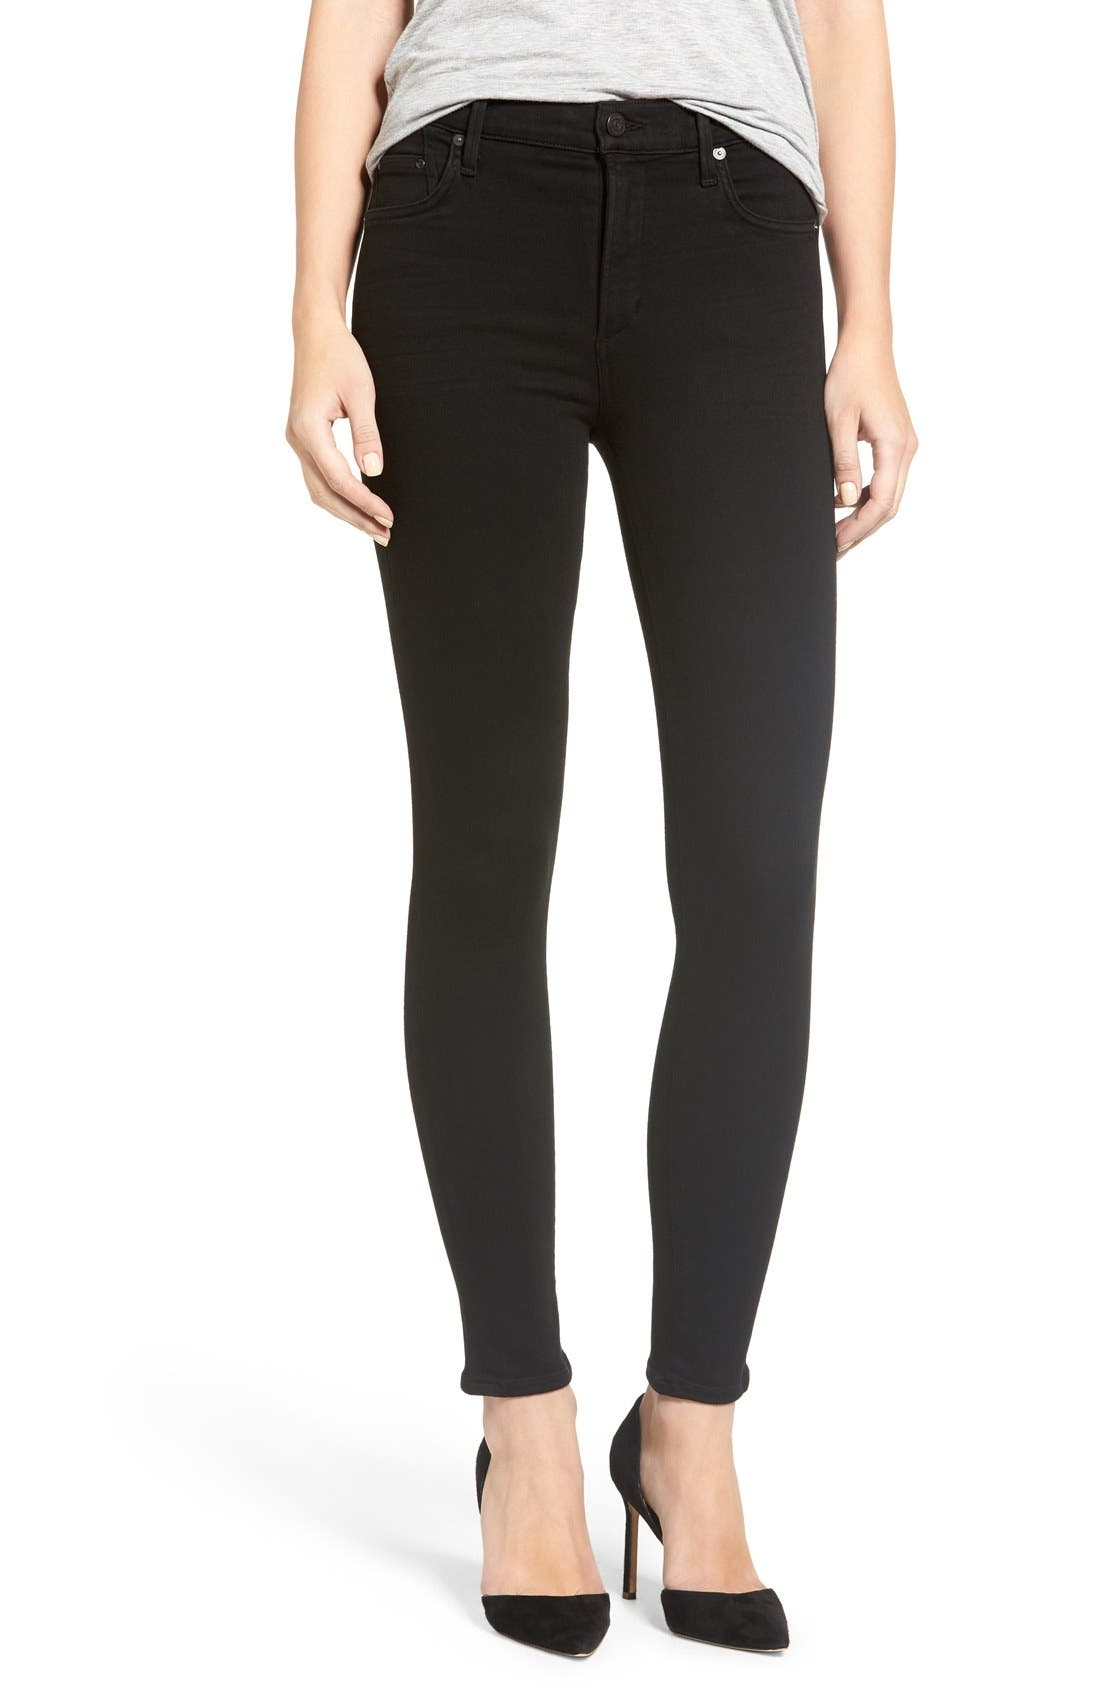 Citizens of Humanity 'Rocket' Skinny Jeans (All Black) (Petite)